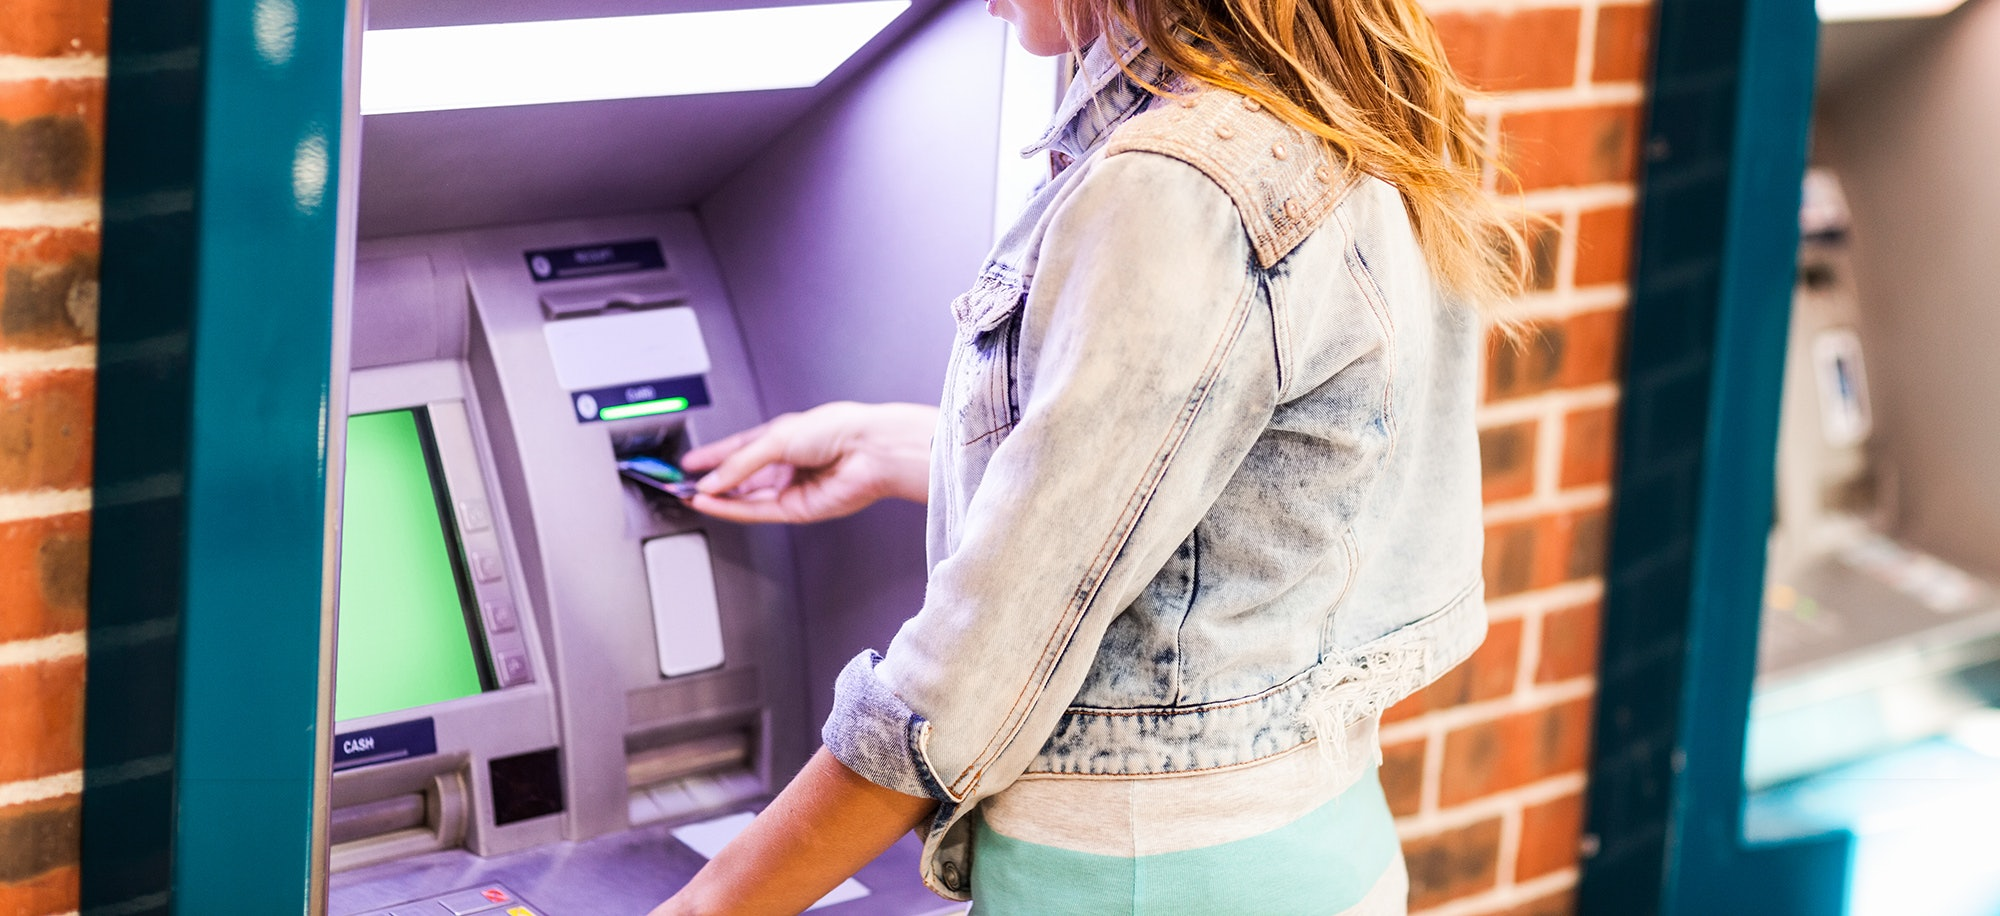 The ATM: an immigrant invention